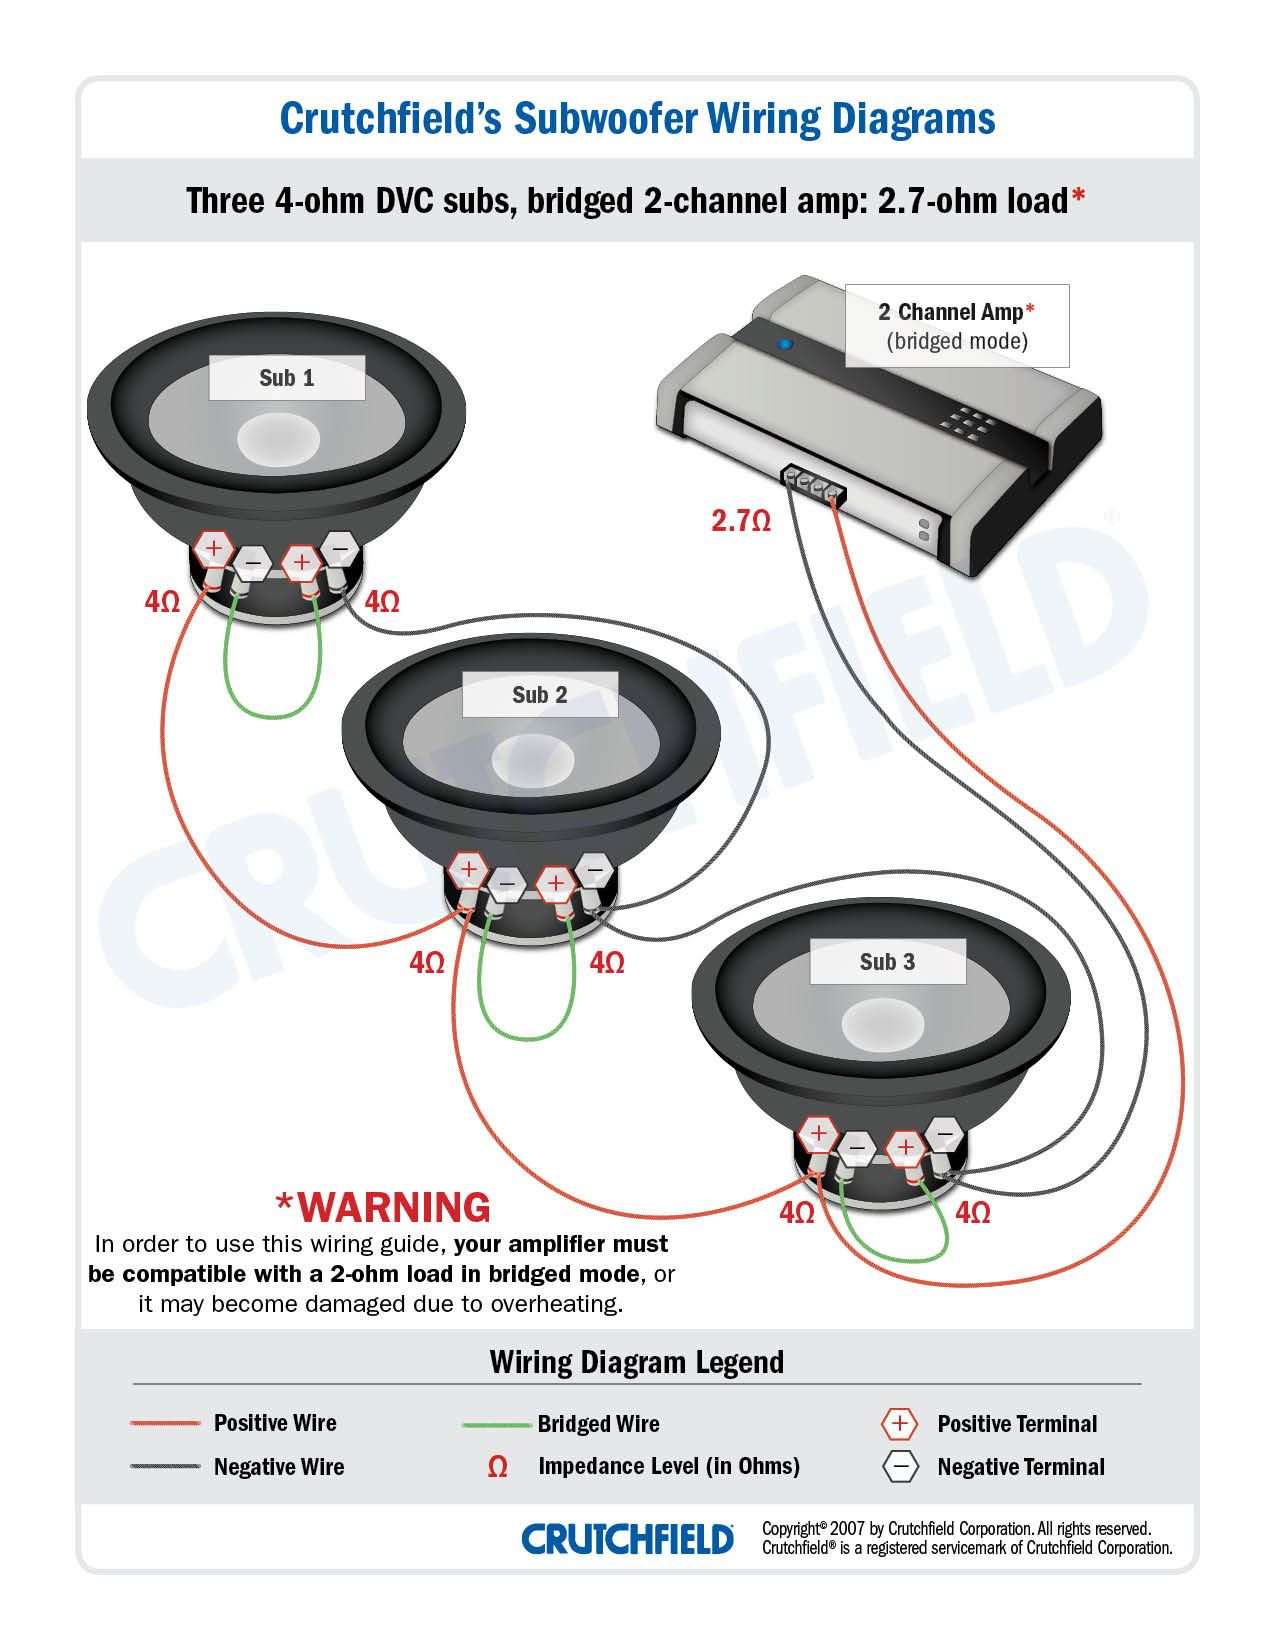 Speaker Wiring Diagram 3 Everything Wiring Diagram